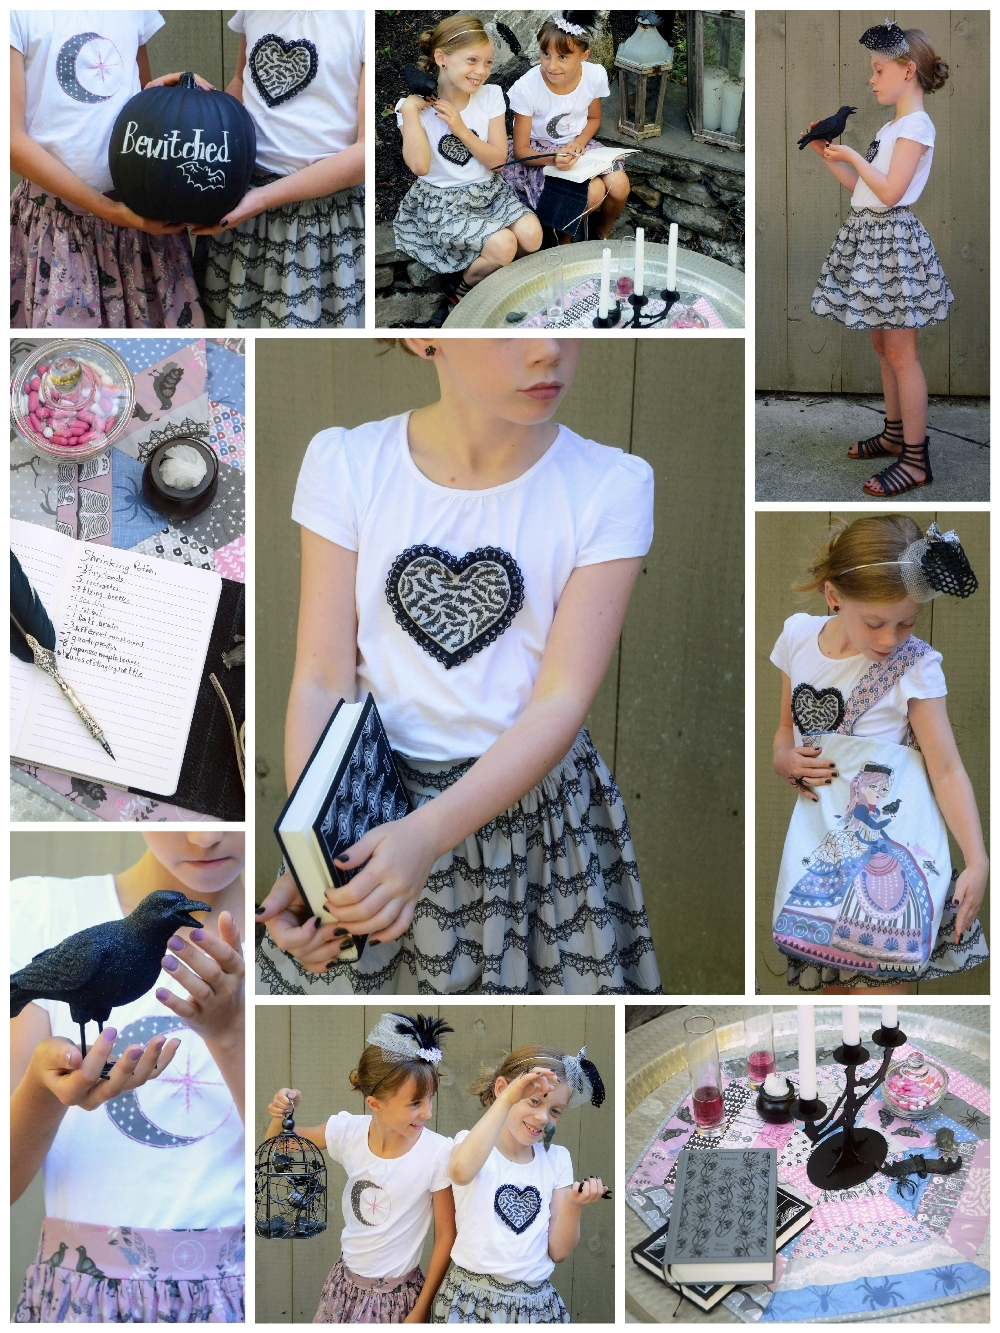 Bewitchd Sewing Inspiration 1000